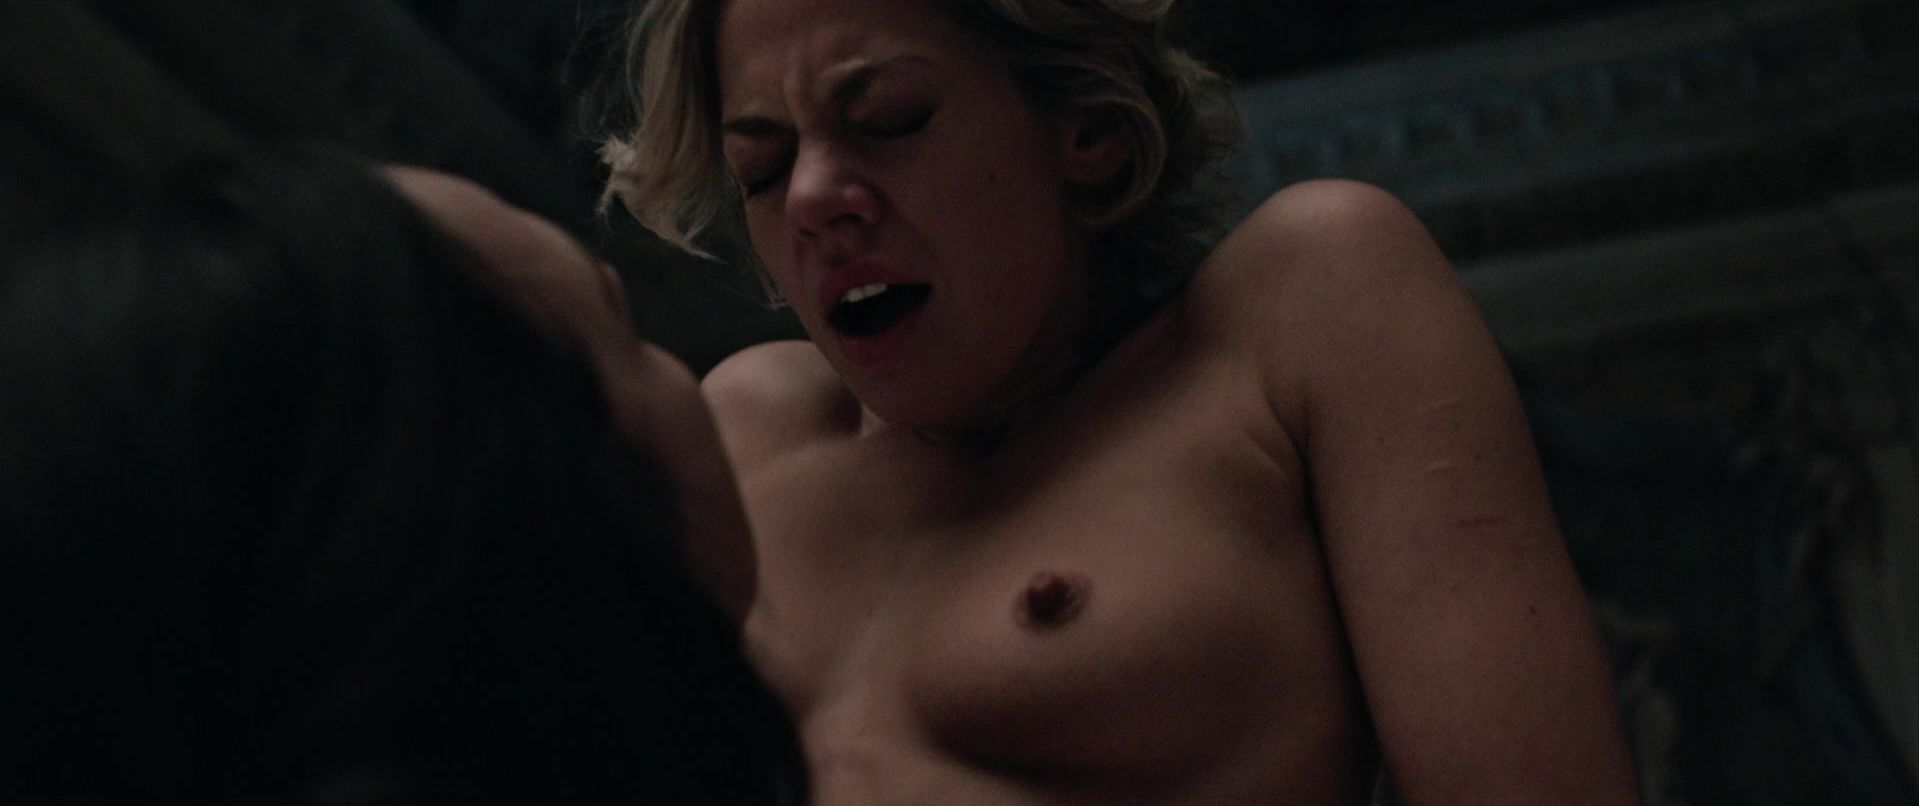 Analeigh Tipton Sex download sex pics analeigh tipton and marta gastini nude